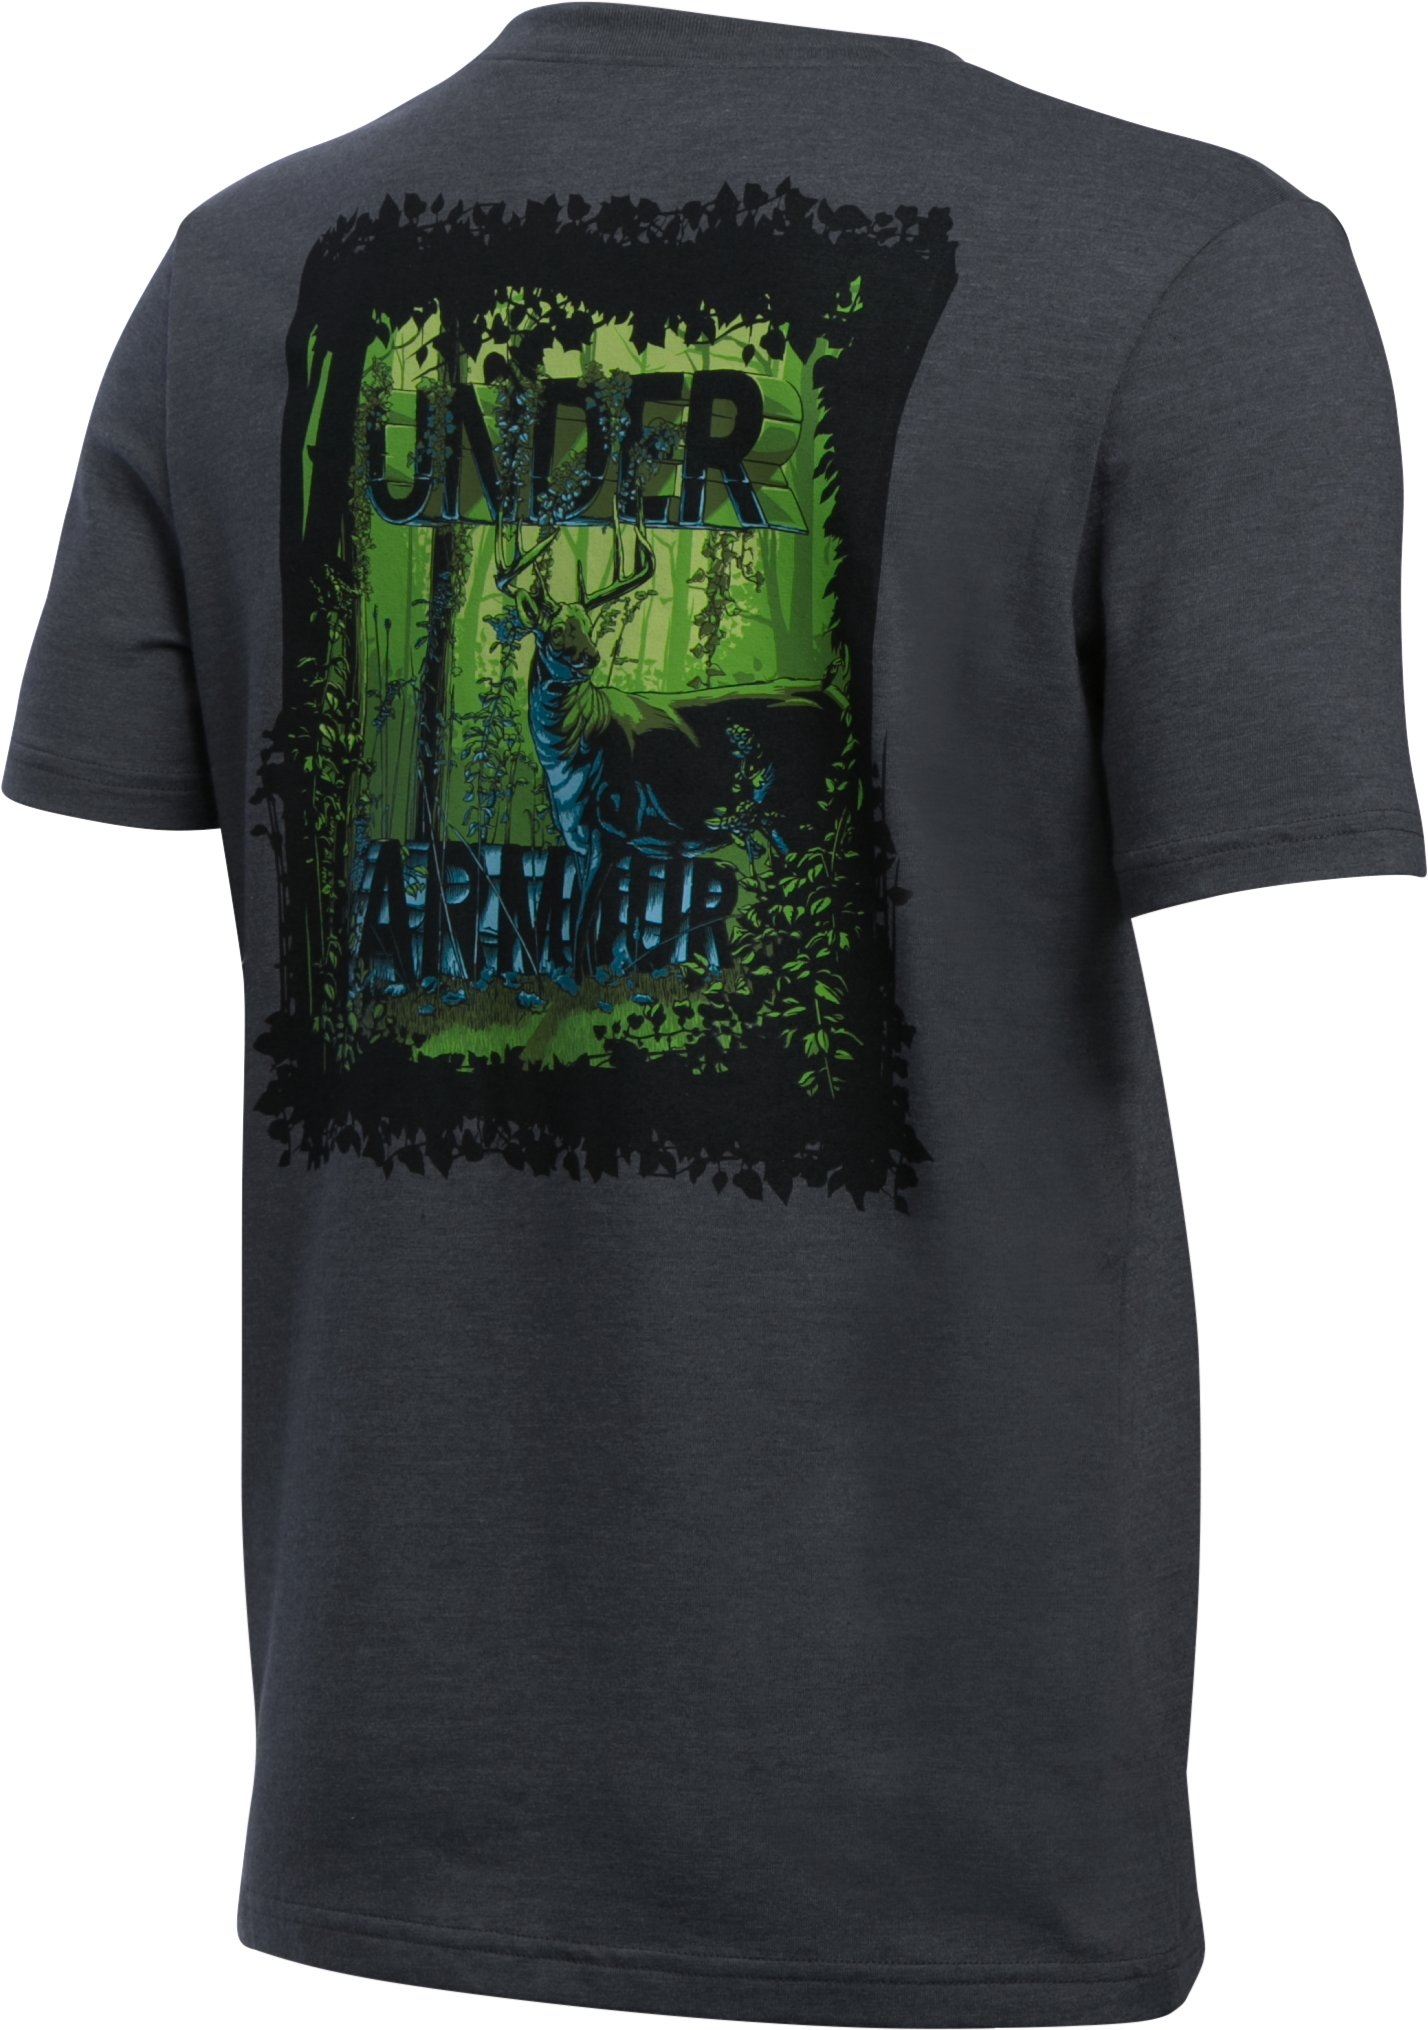 Boys' UA Whitetail Graphic Short Sleeve T-Shirt, Carbon Heather, zoomed image